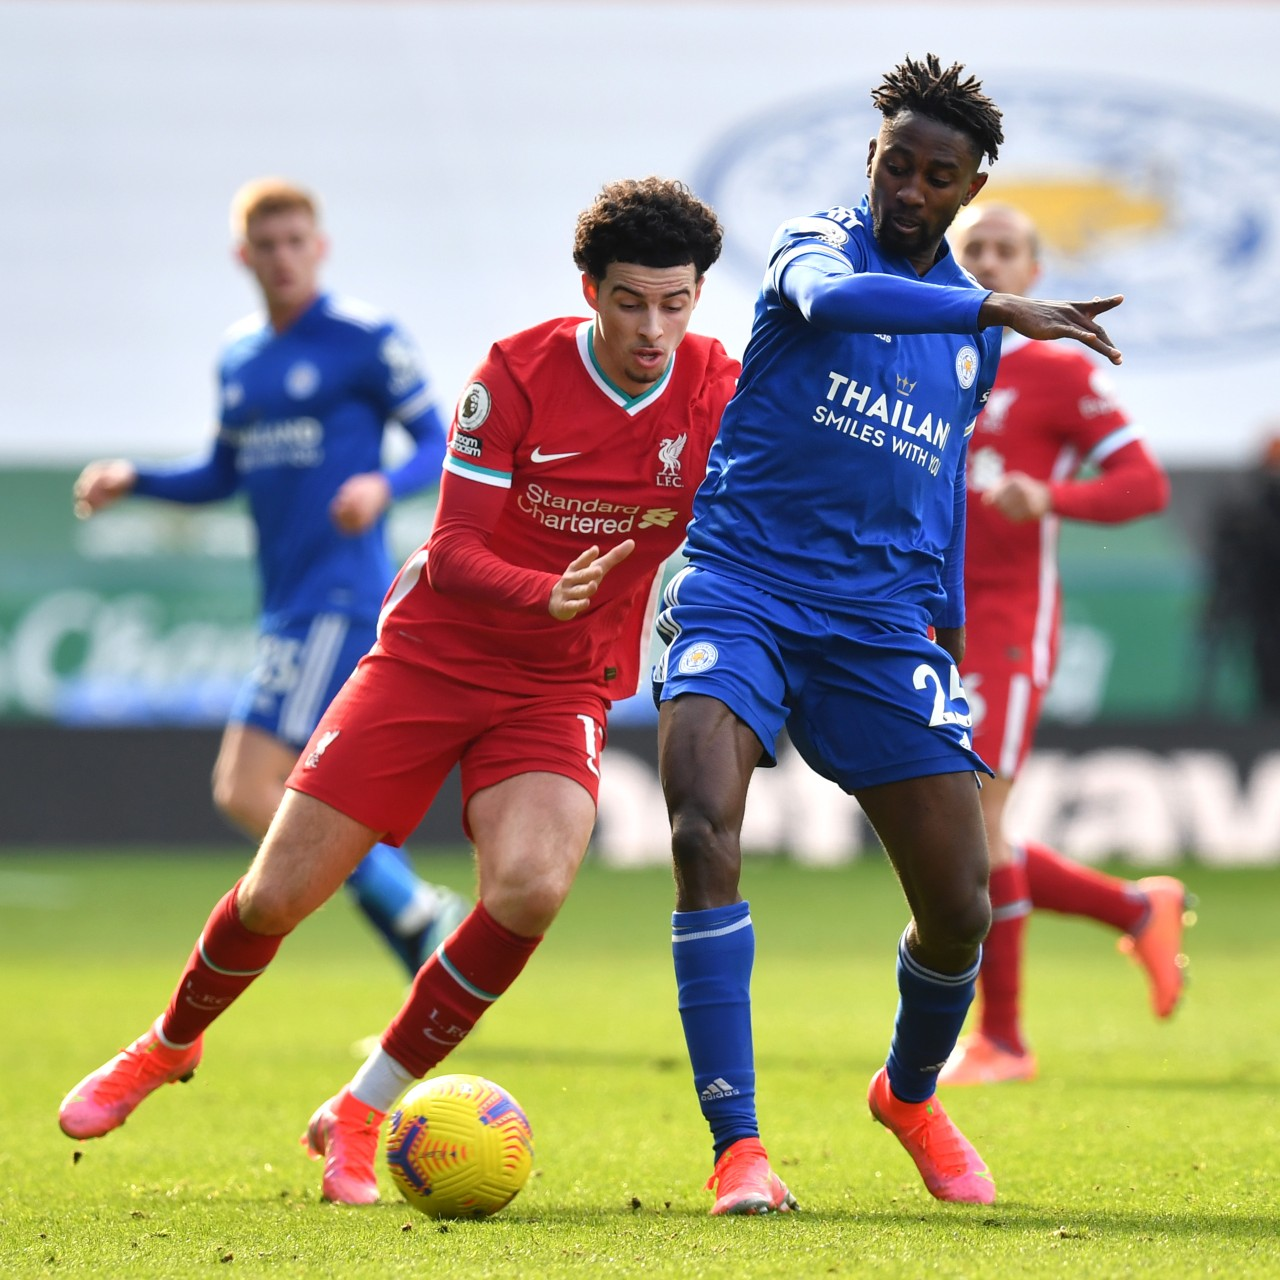 Premier League: Ndidi Bags Assist, Alisson Howler Again As Leicester Inflict More Miseries On Liverpool